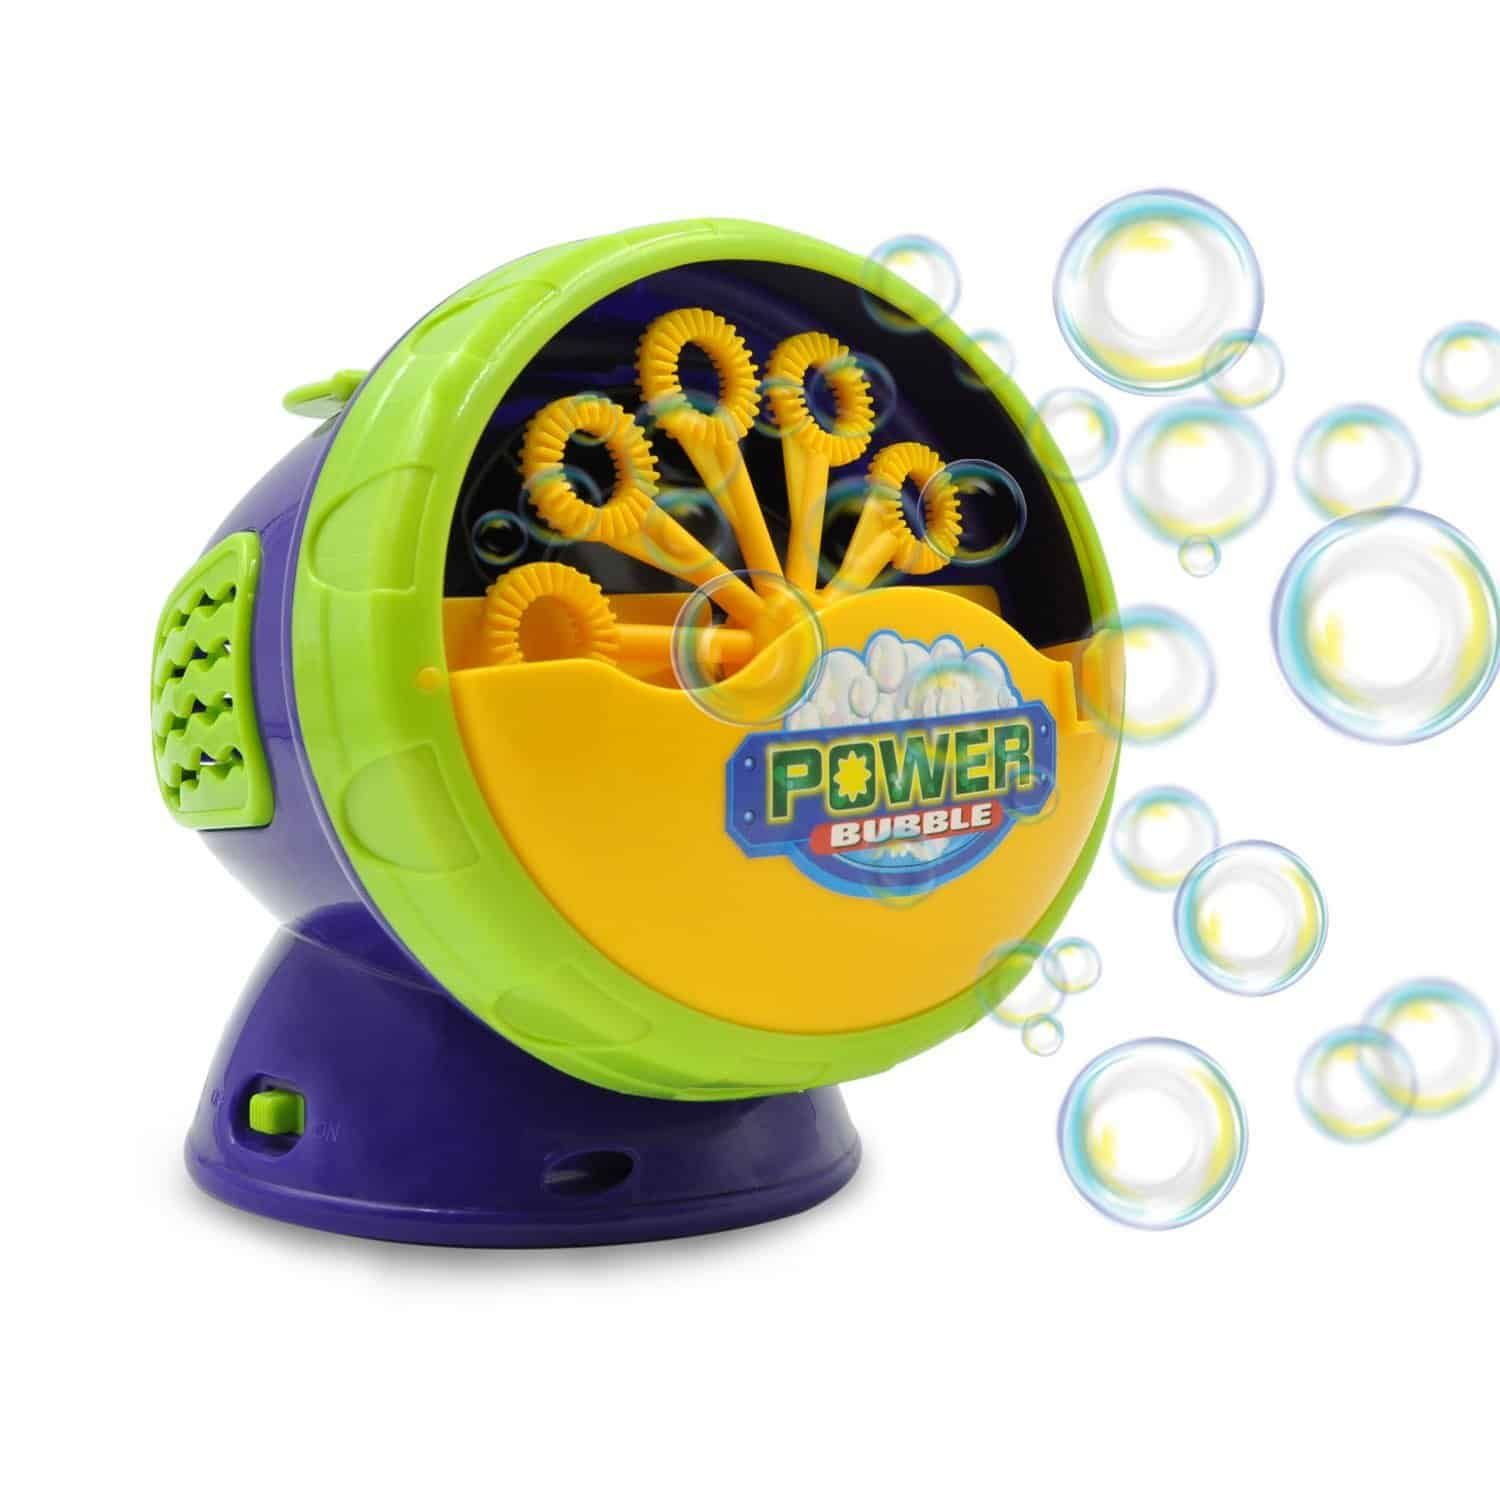 Awesome Top 10 Best Automatic Bubble Machines in 2017 Reviews